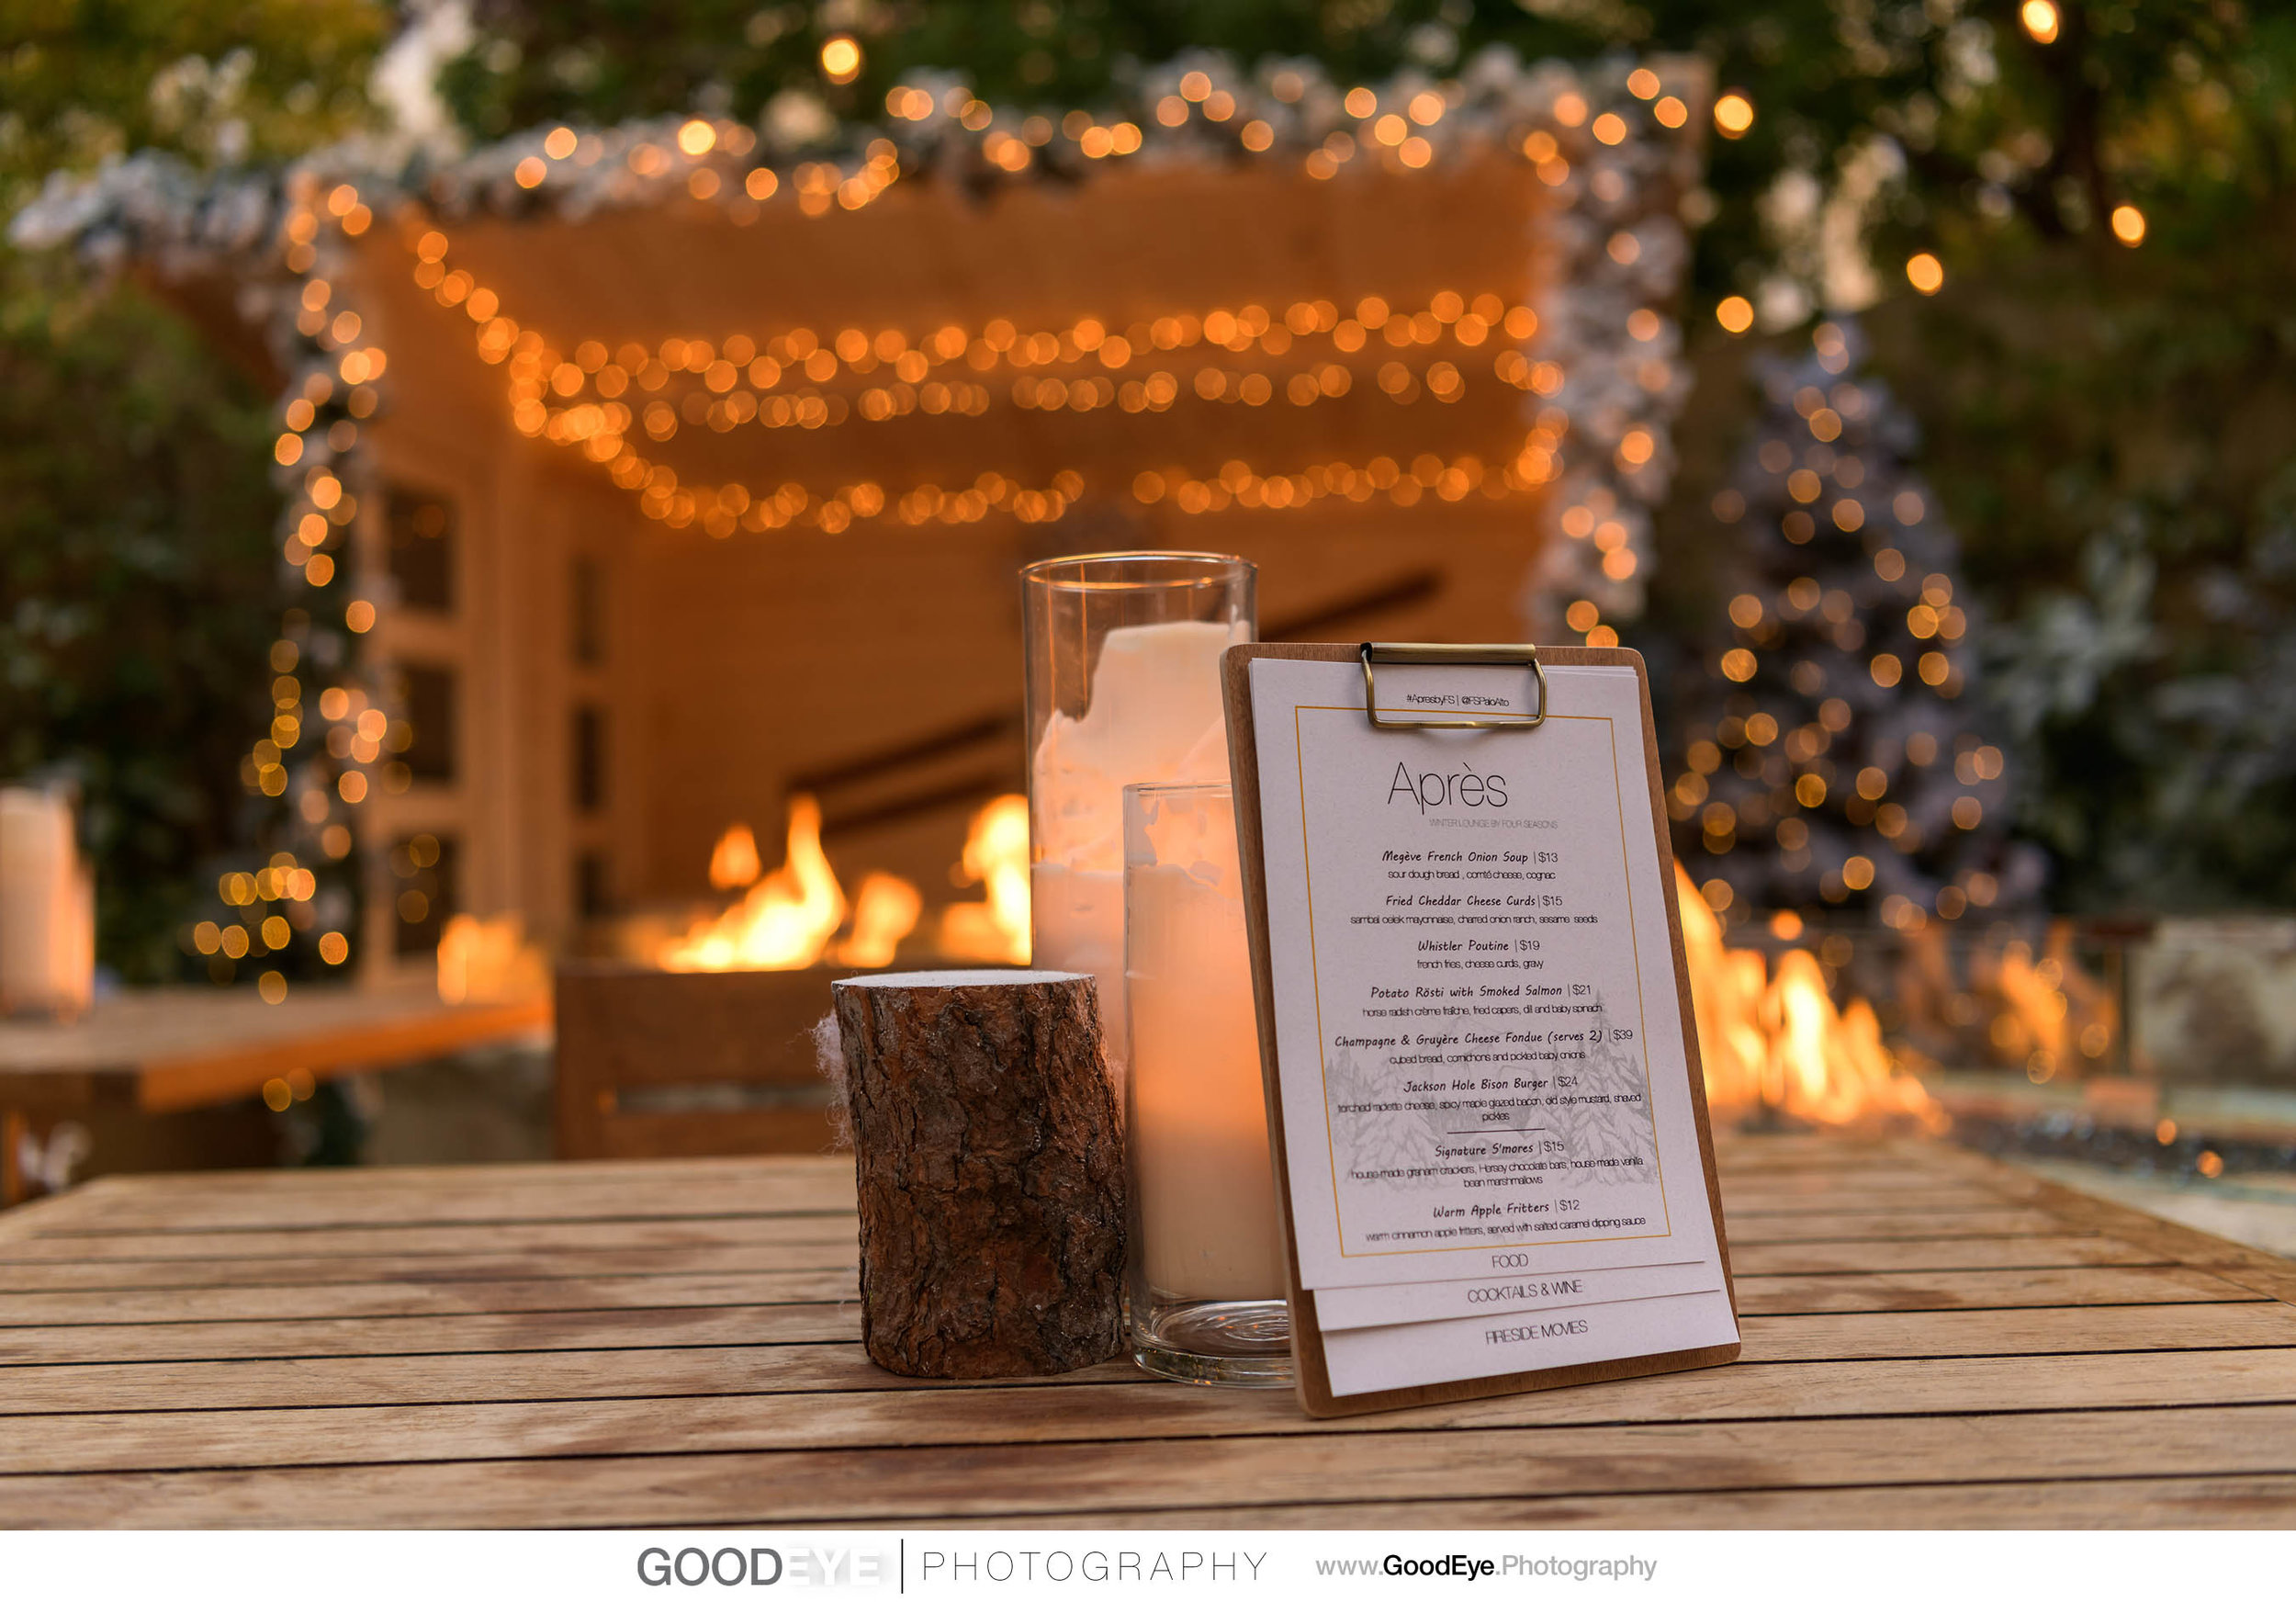 Four Seasons Hotel Corporate Photography - Food - Event - People